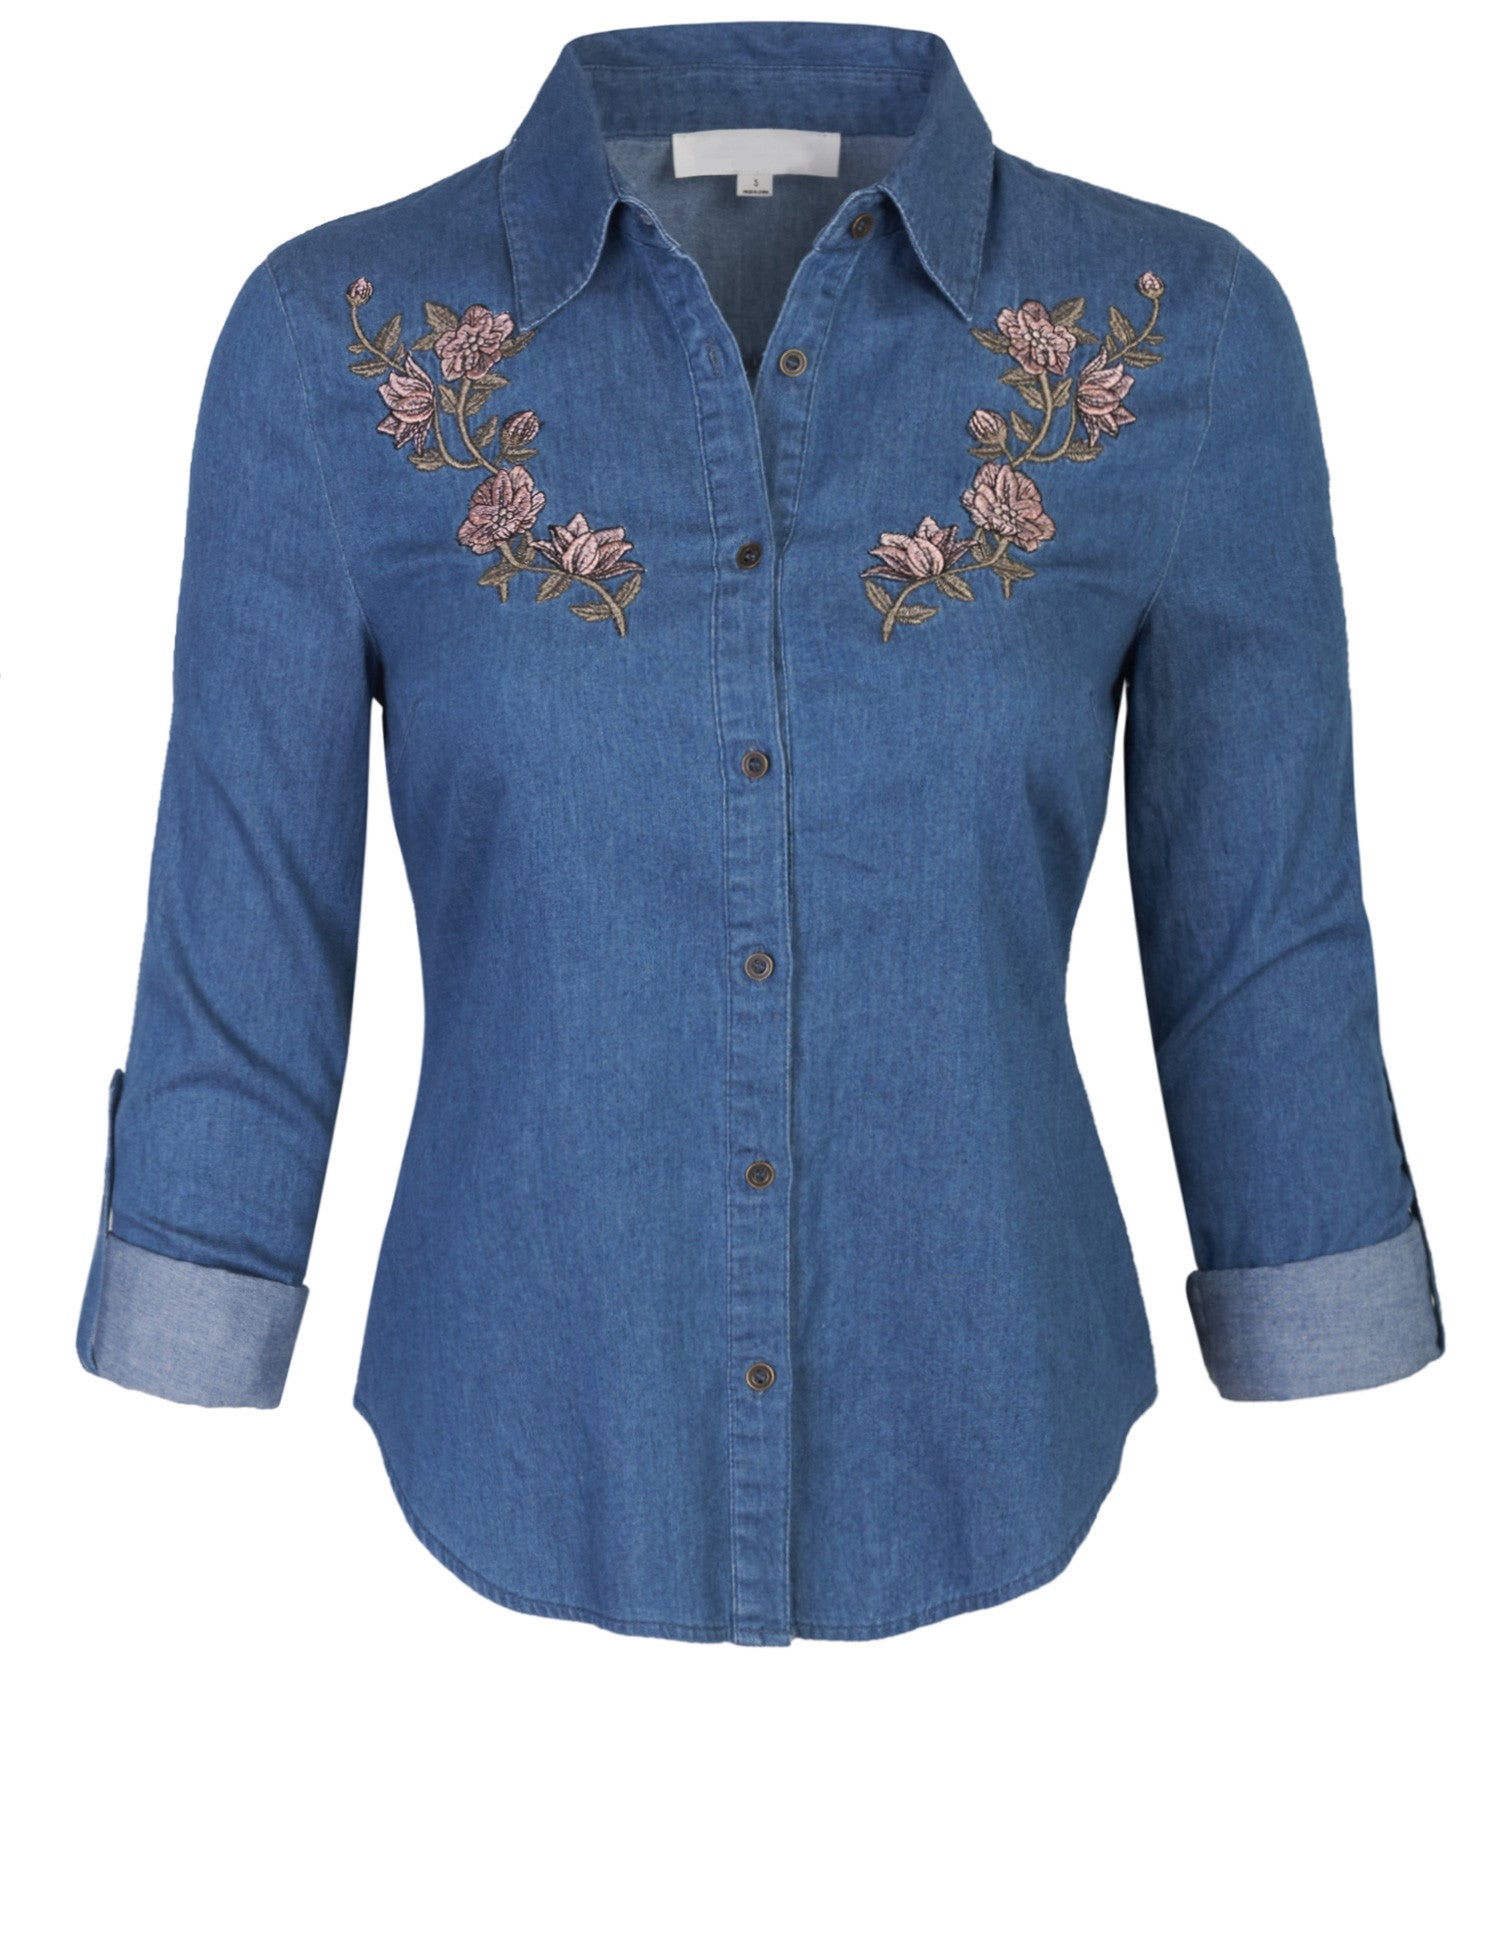 323832f6 Womens Long Sleeve Denim Shirt Fitted Blouse with Embroidery - KOGMO